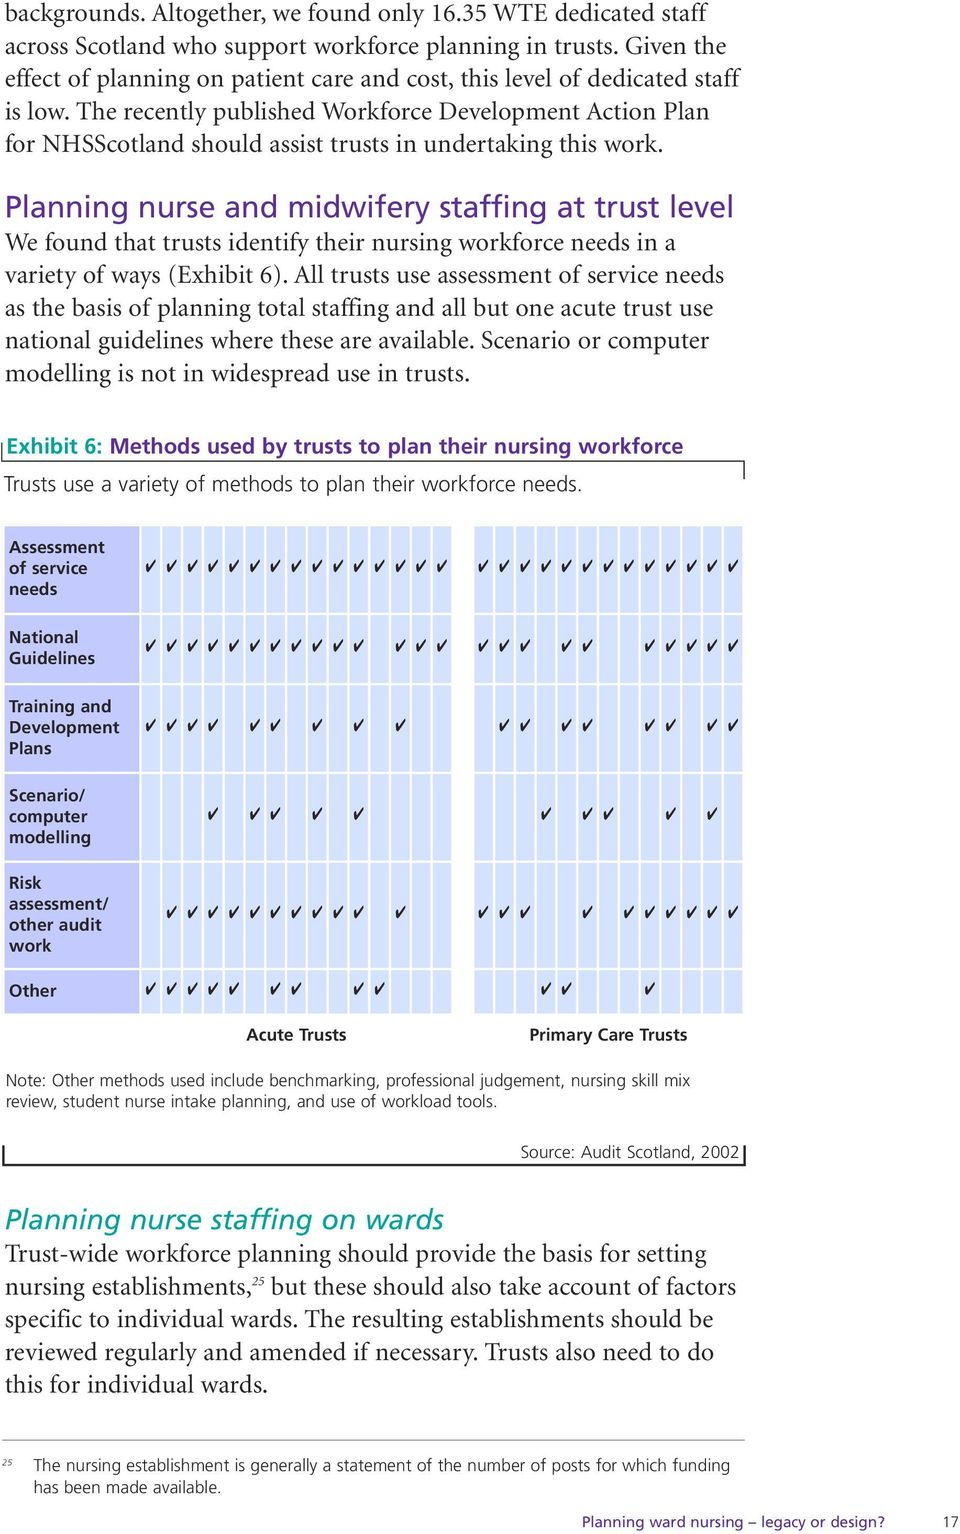 The recently published Workforce Development Action Plan for NHSScotland should assist trusts in undertaking this work.